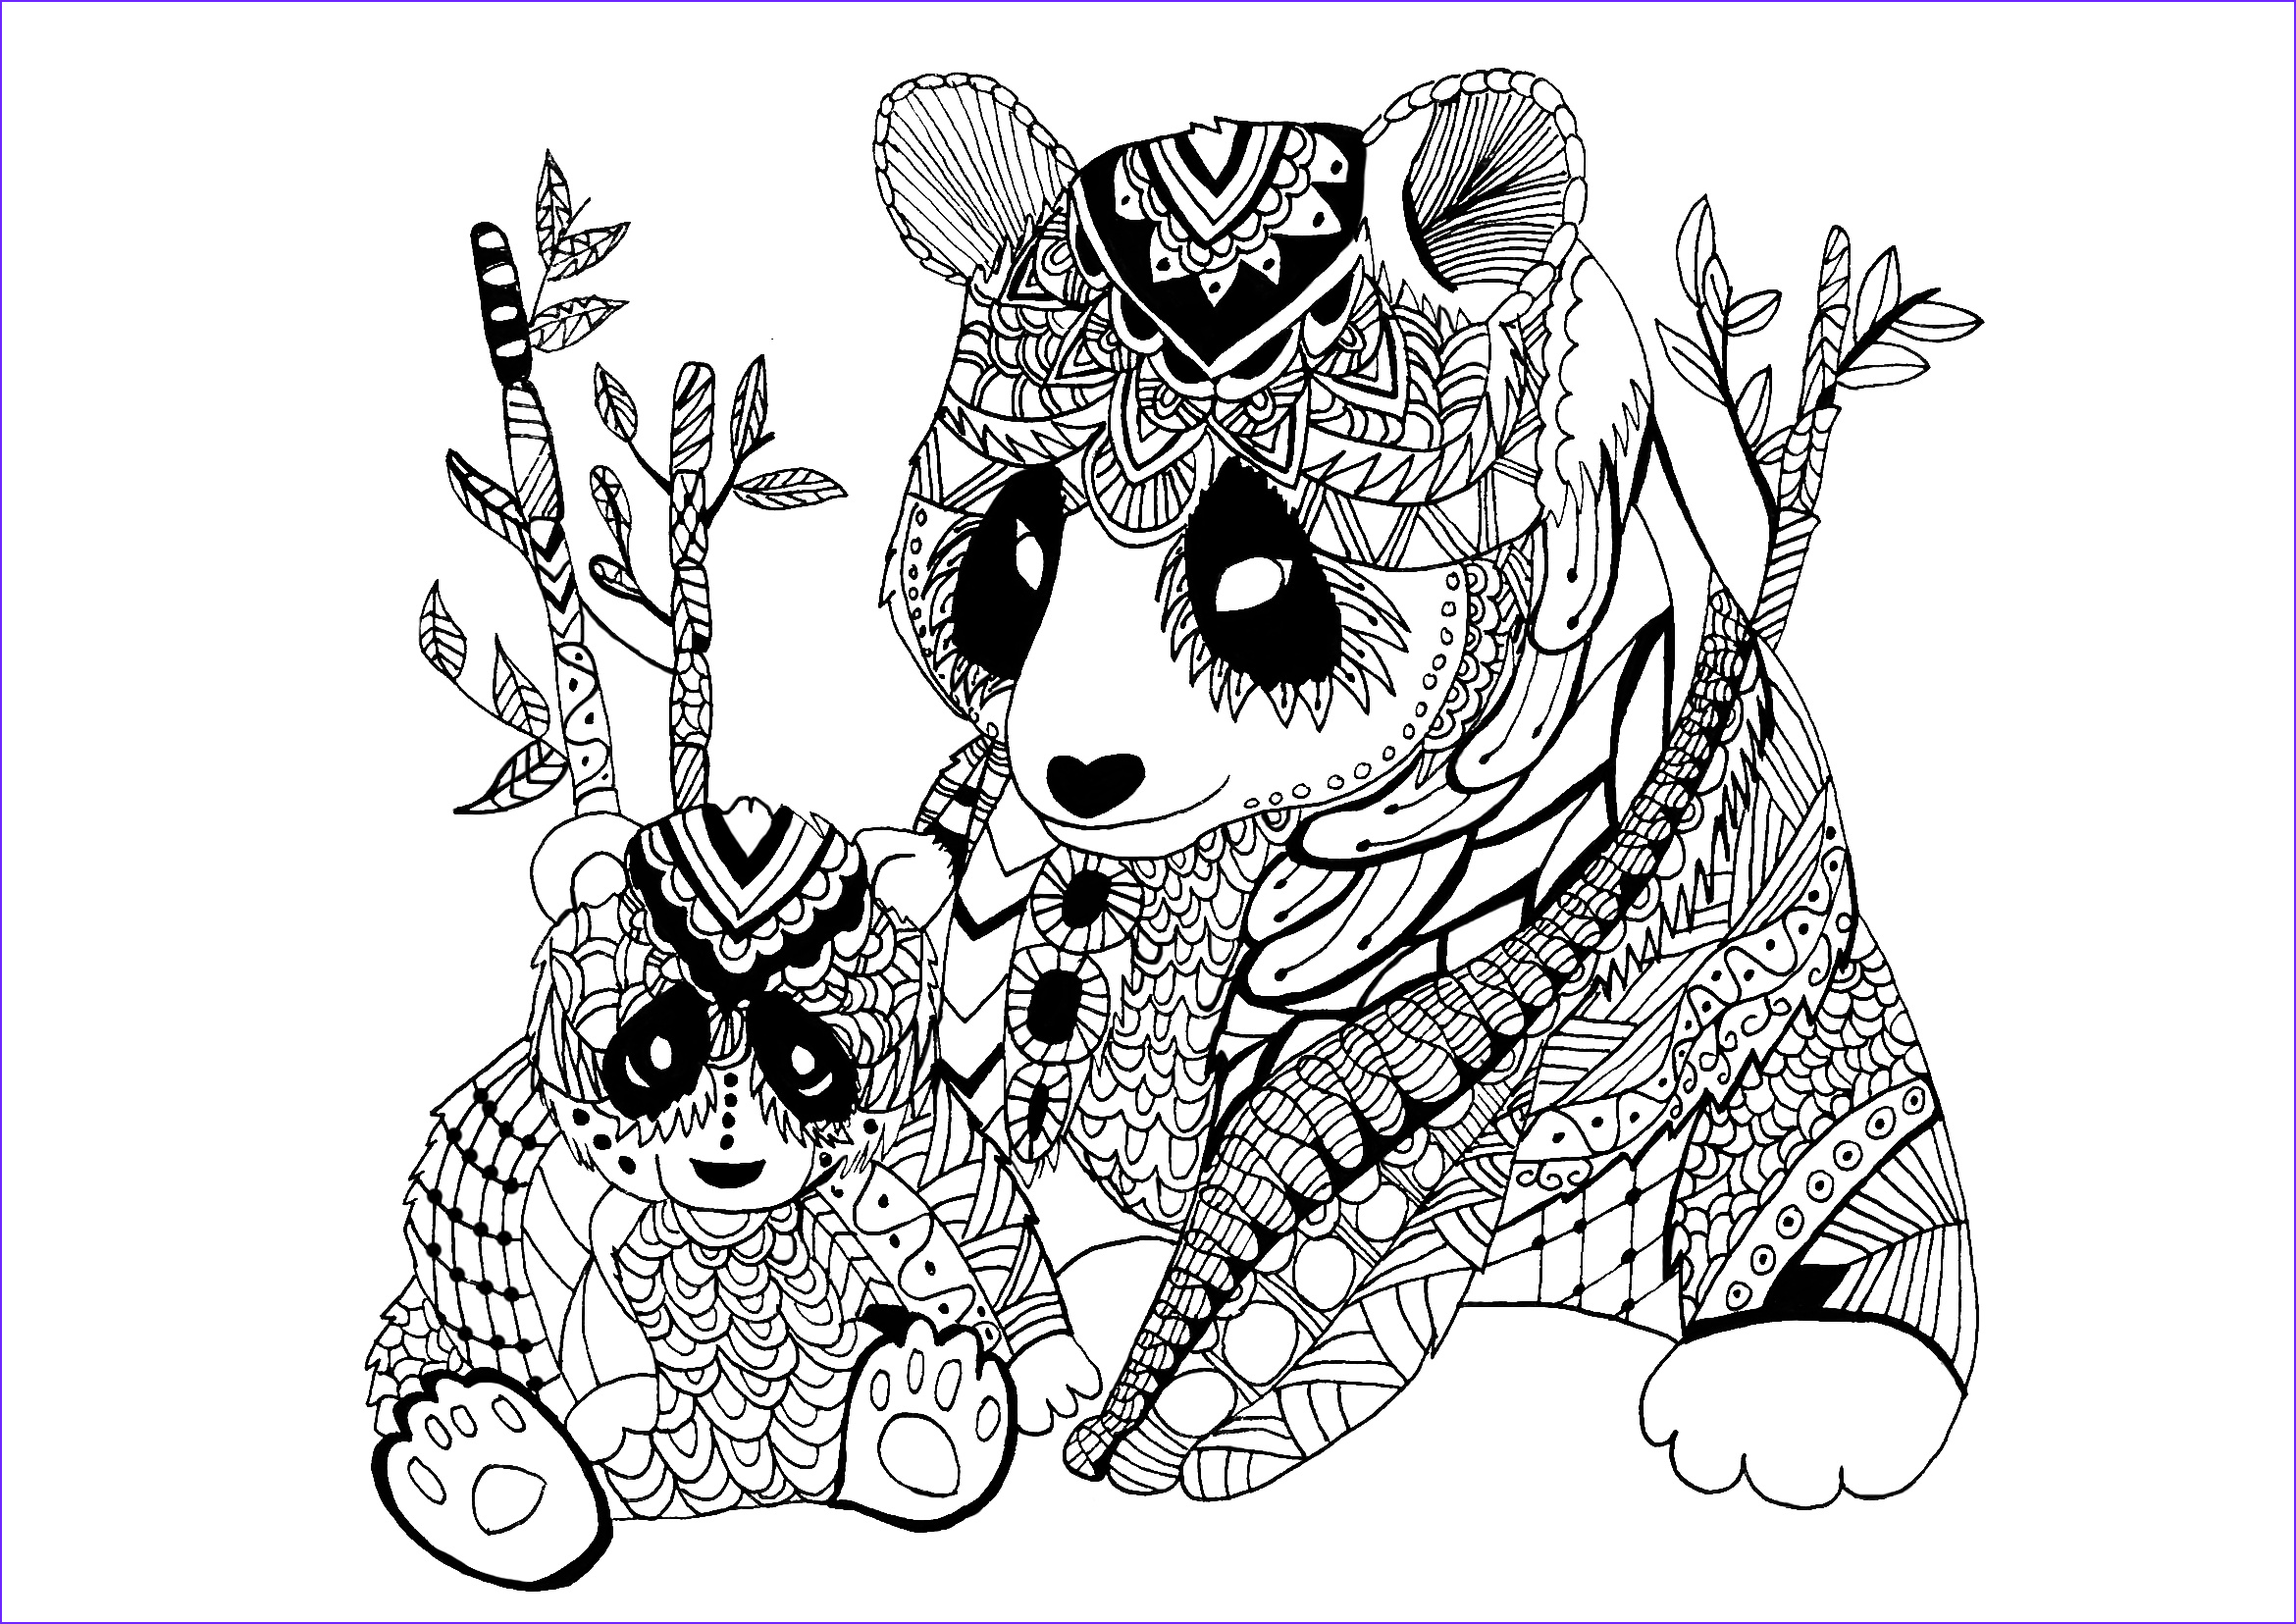 Coloring Pictures for Adults Luxury Photography Panda Coloring Pages Best Coloring Pages for Kids